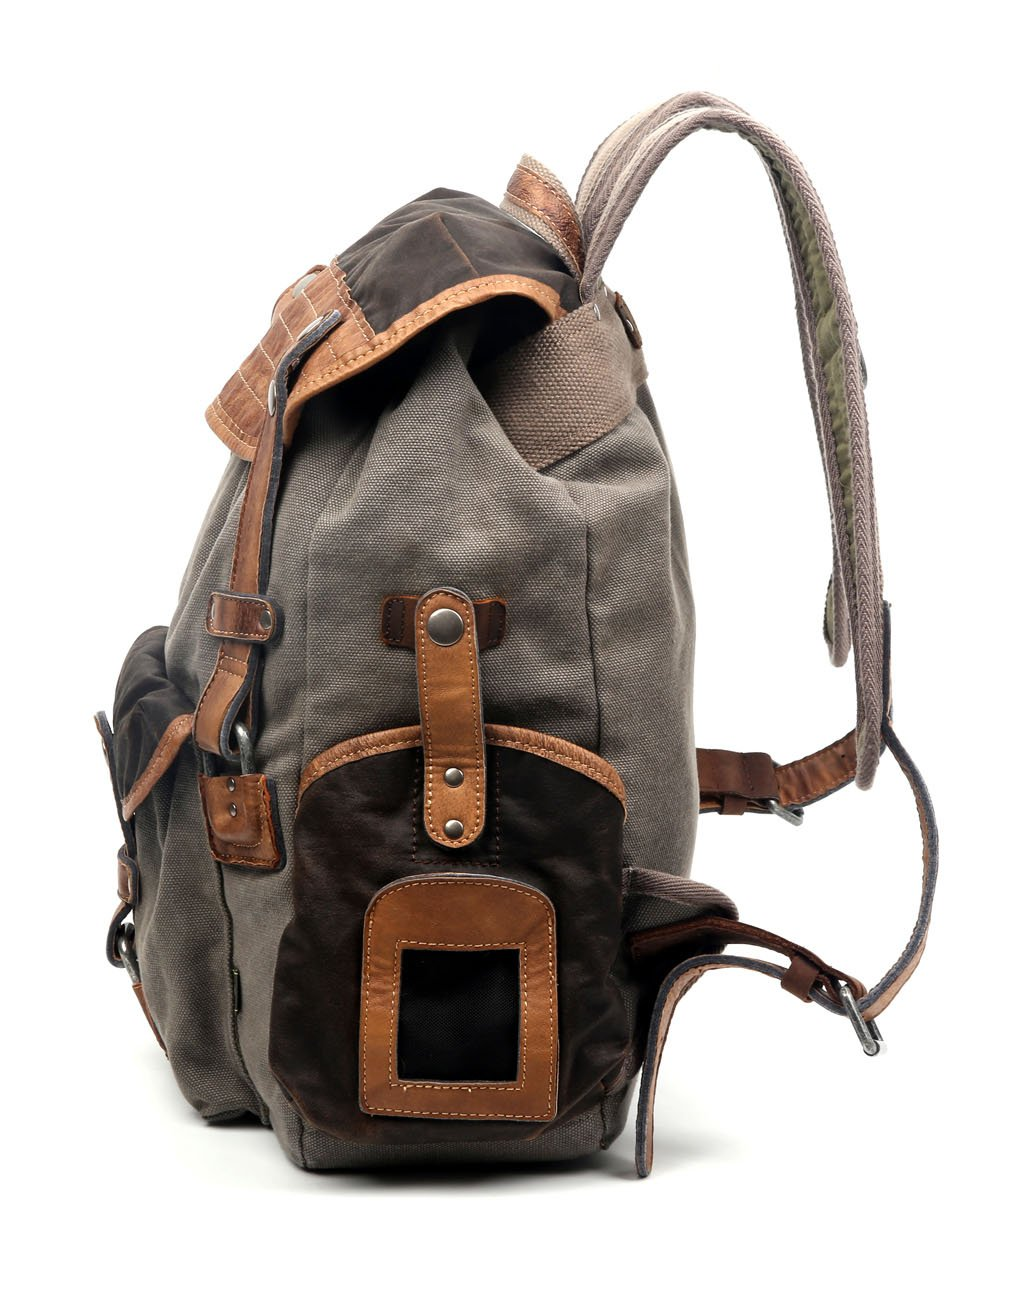 Grey The Same Direction Tapa Two Tone Canvas Backpack Leather and Canvas Bag